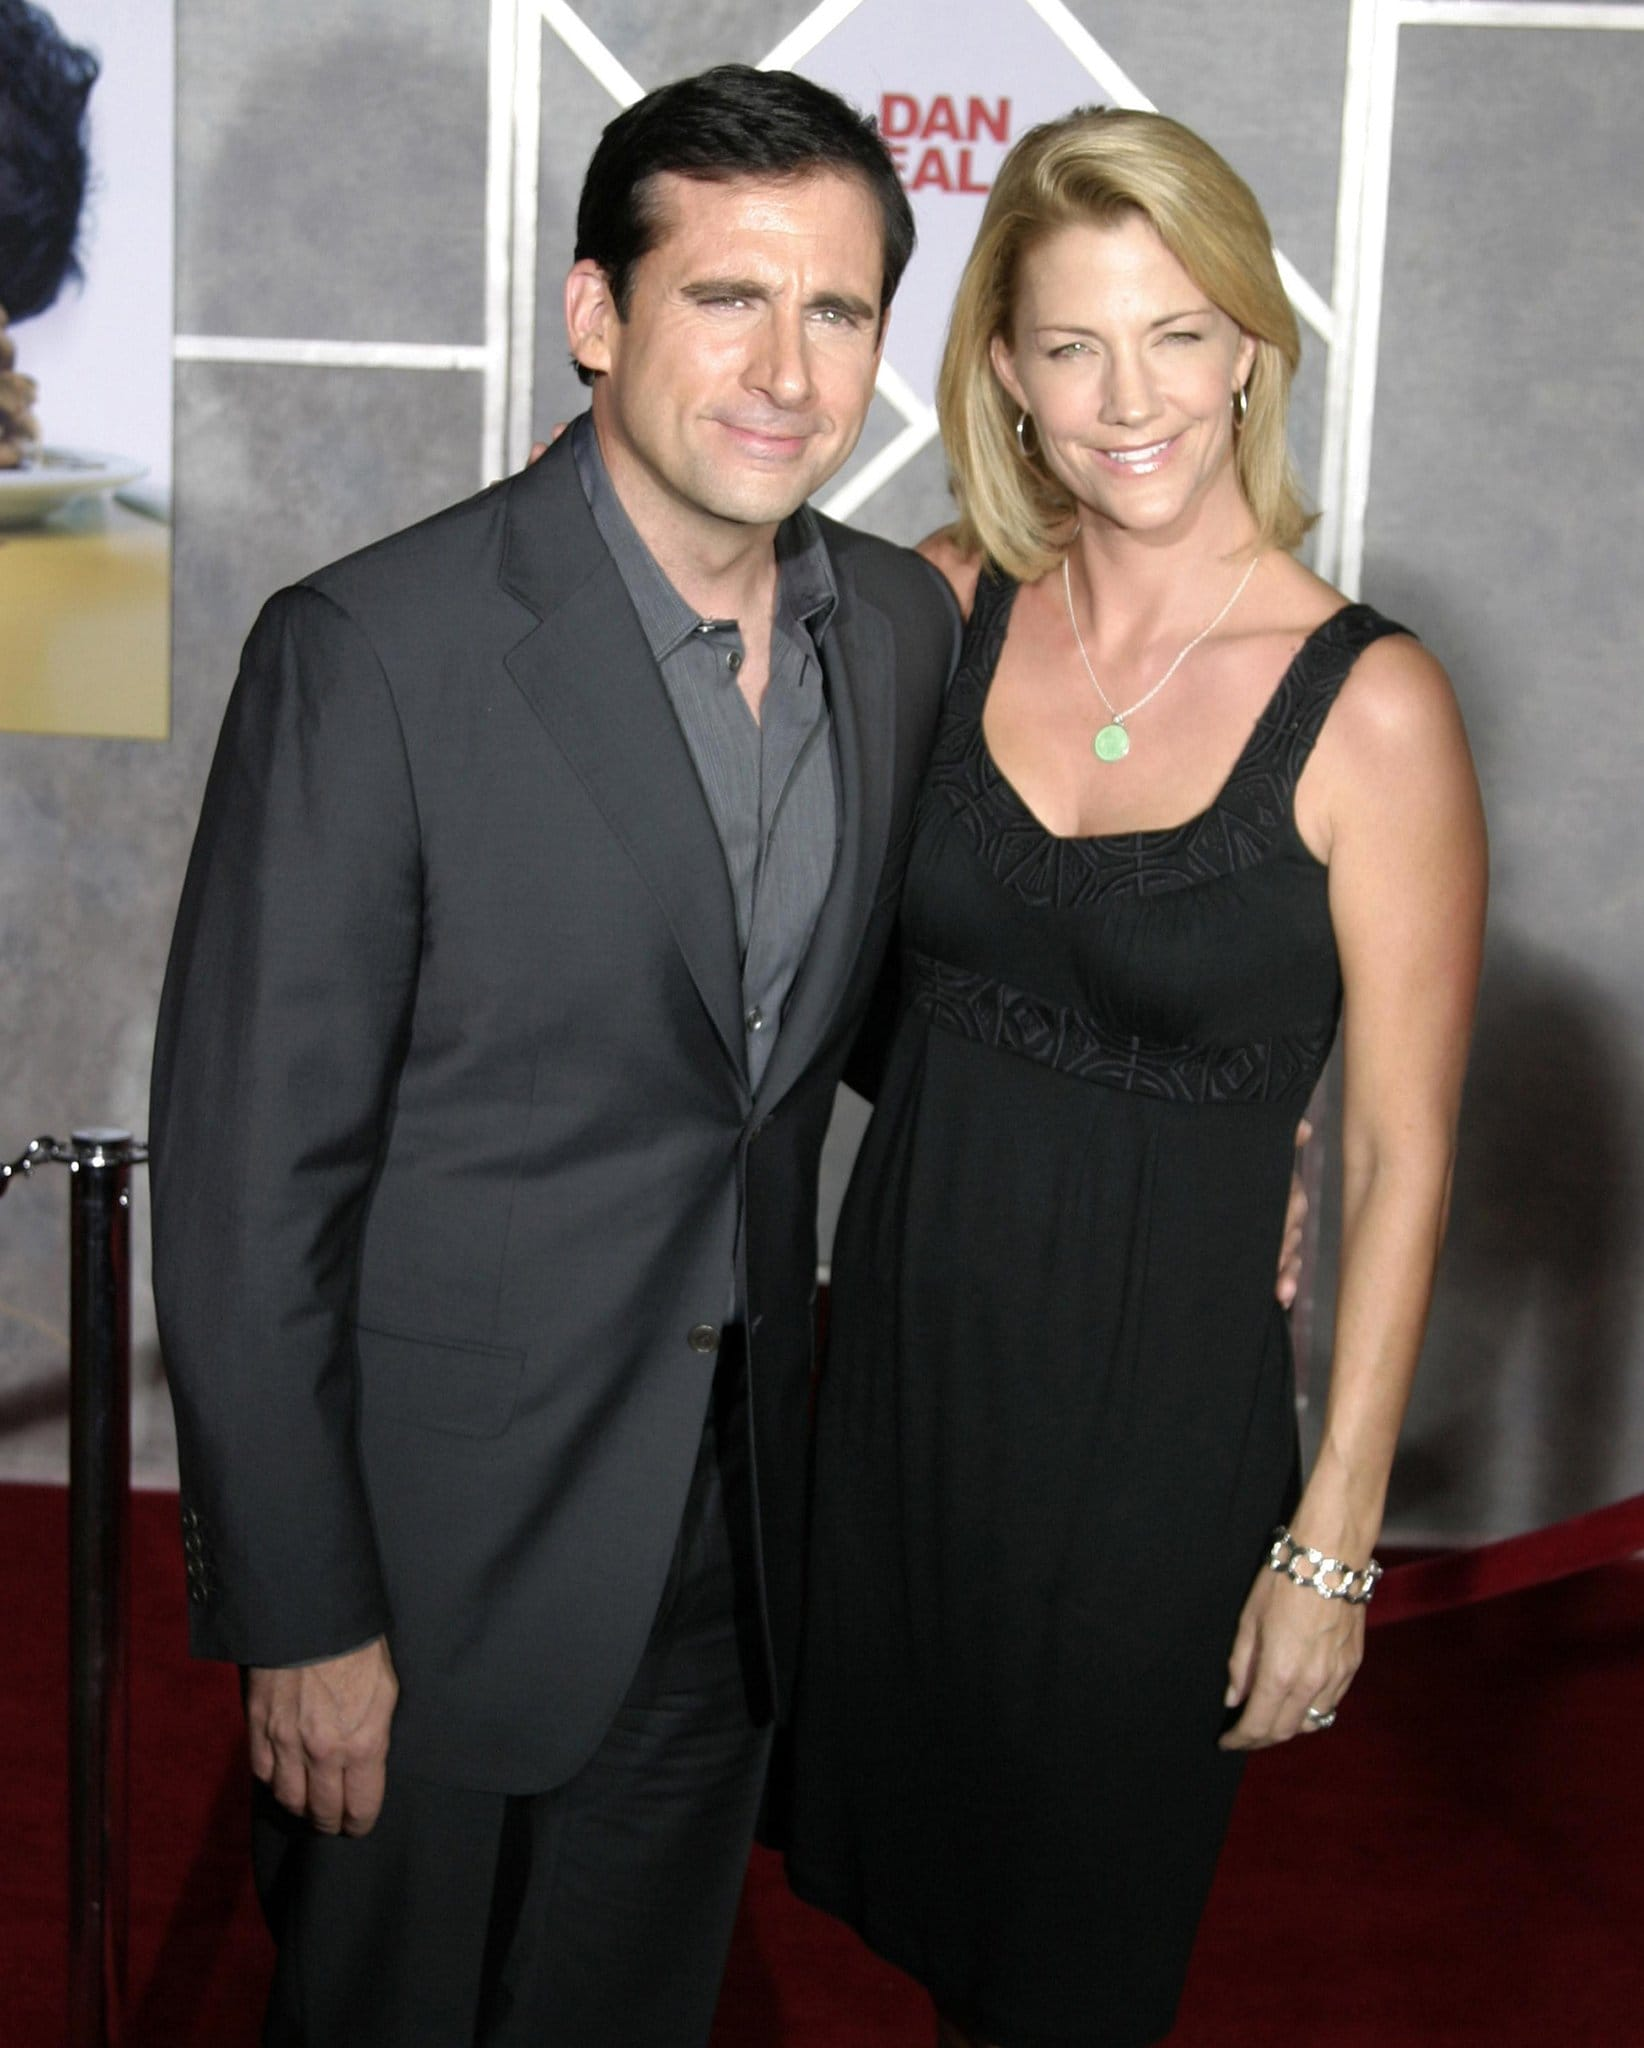 Steve Carell was immediately attracted to Nancy Walls when he met her at Second City in Chicago in the 1990s